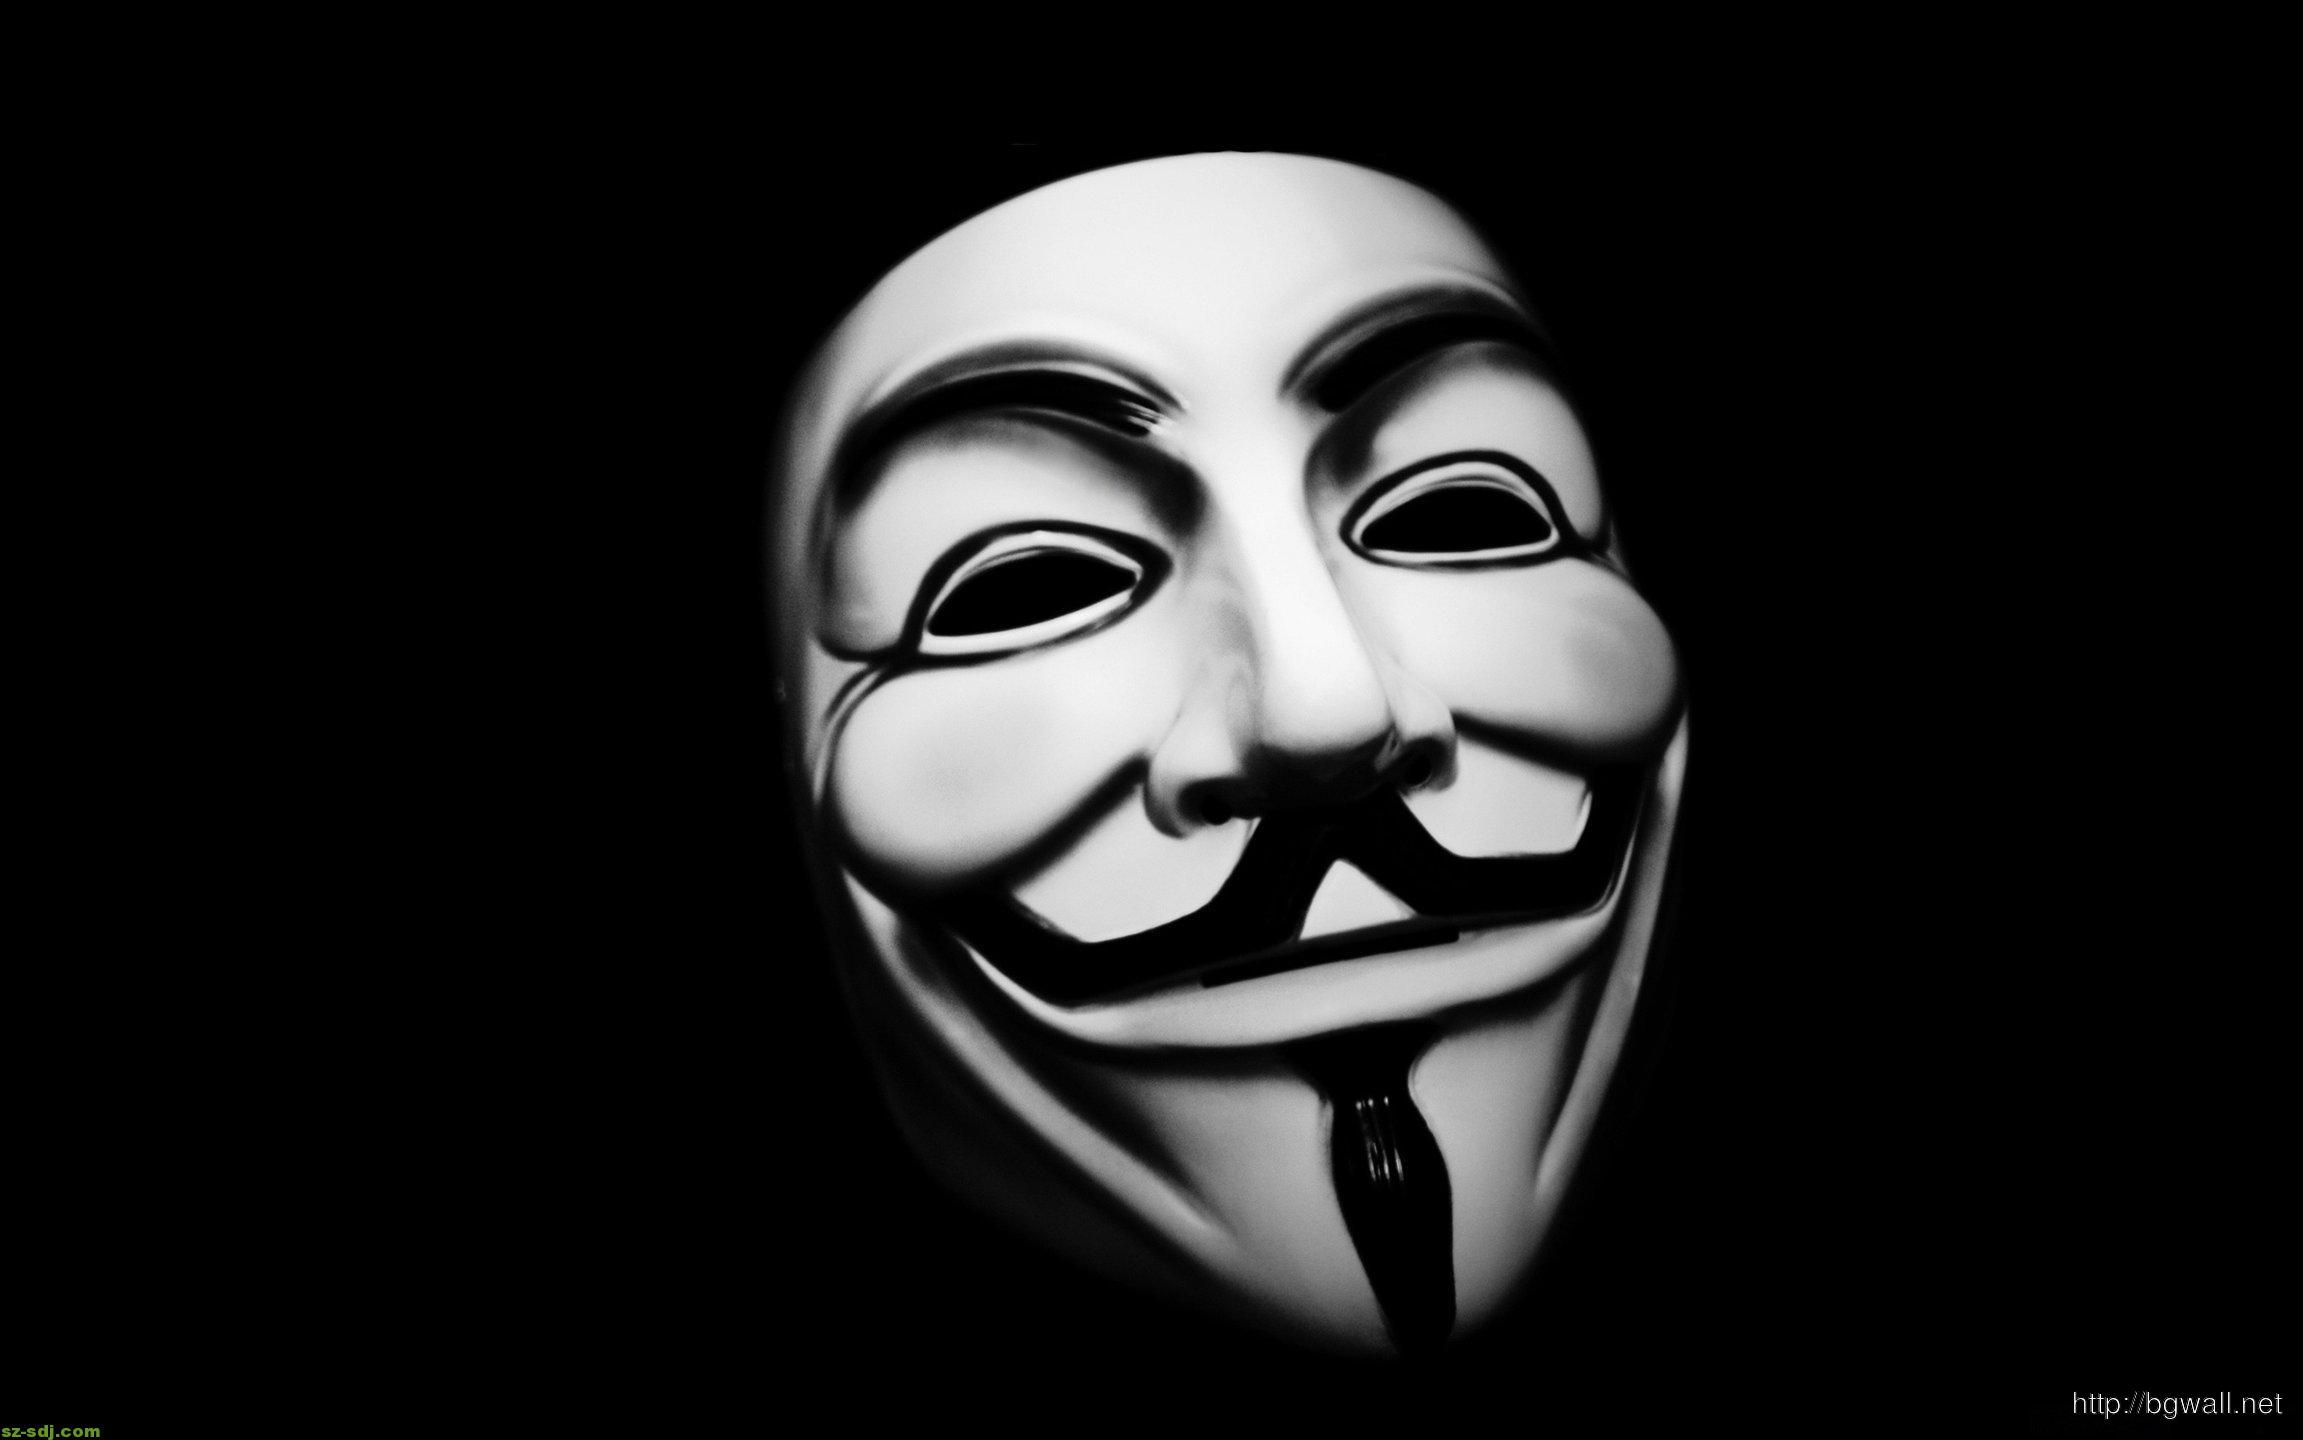 anonymous-mask-wallpaper-image